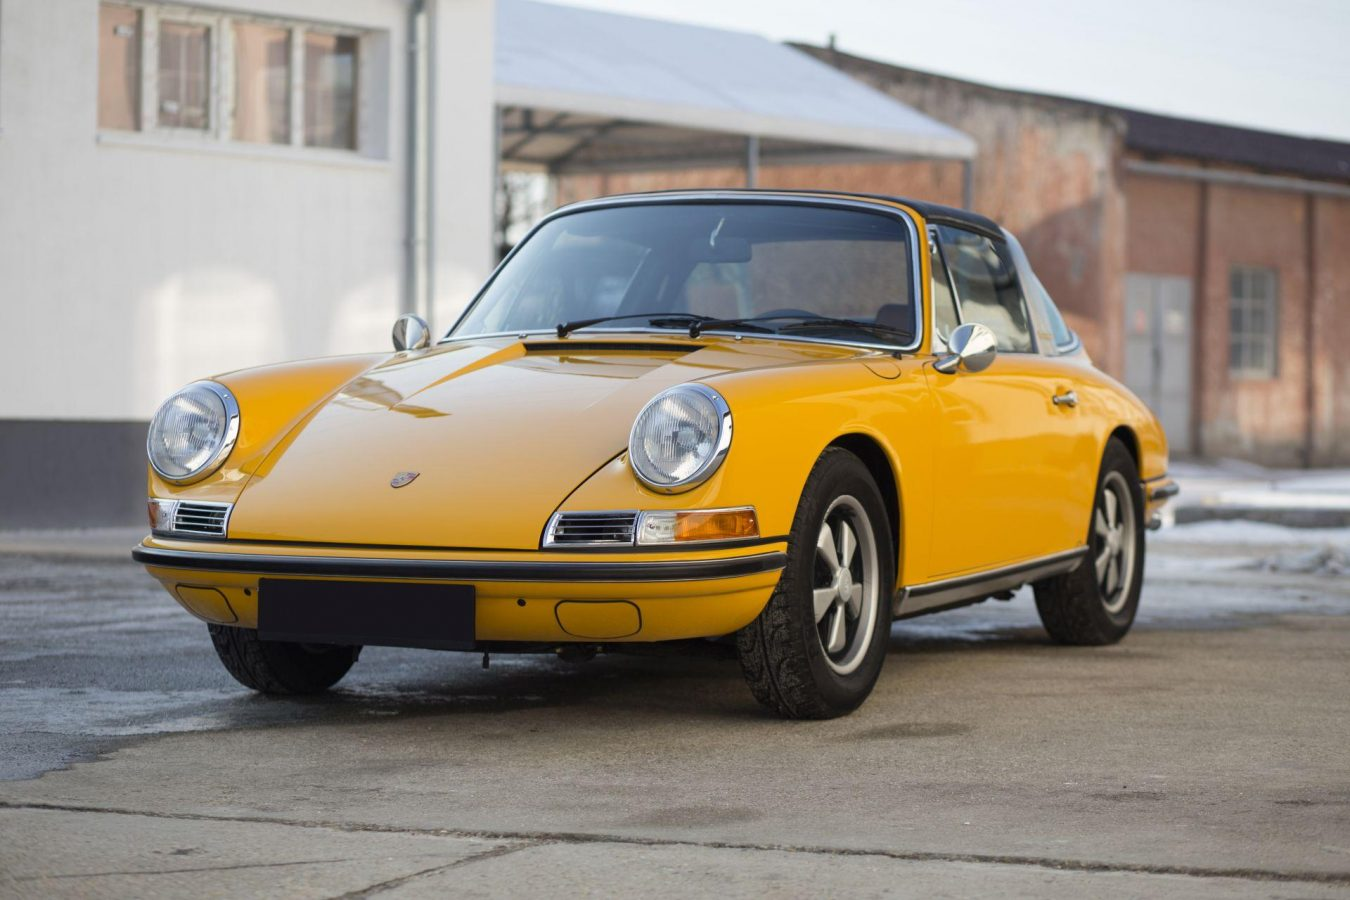 Gelber Porsche 911S Targa von Vehicle Experts